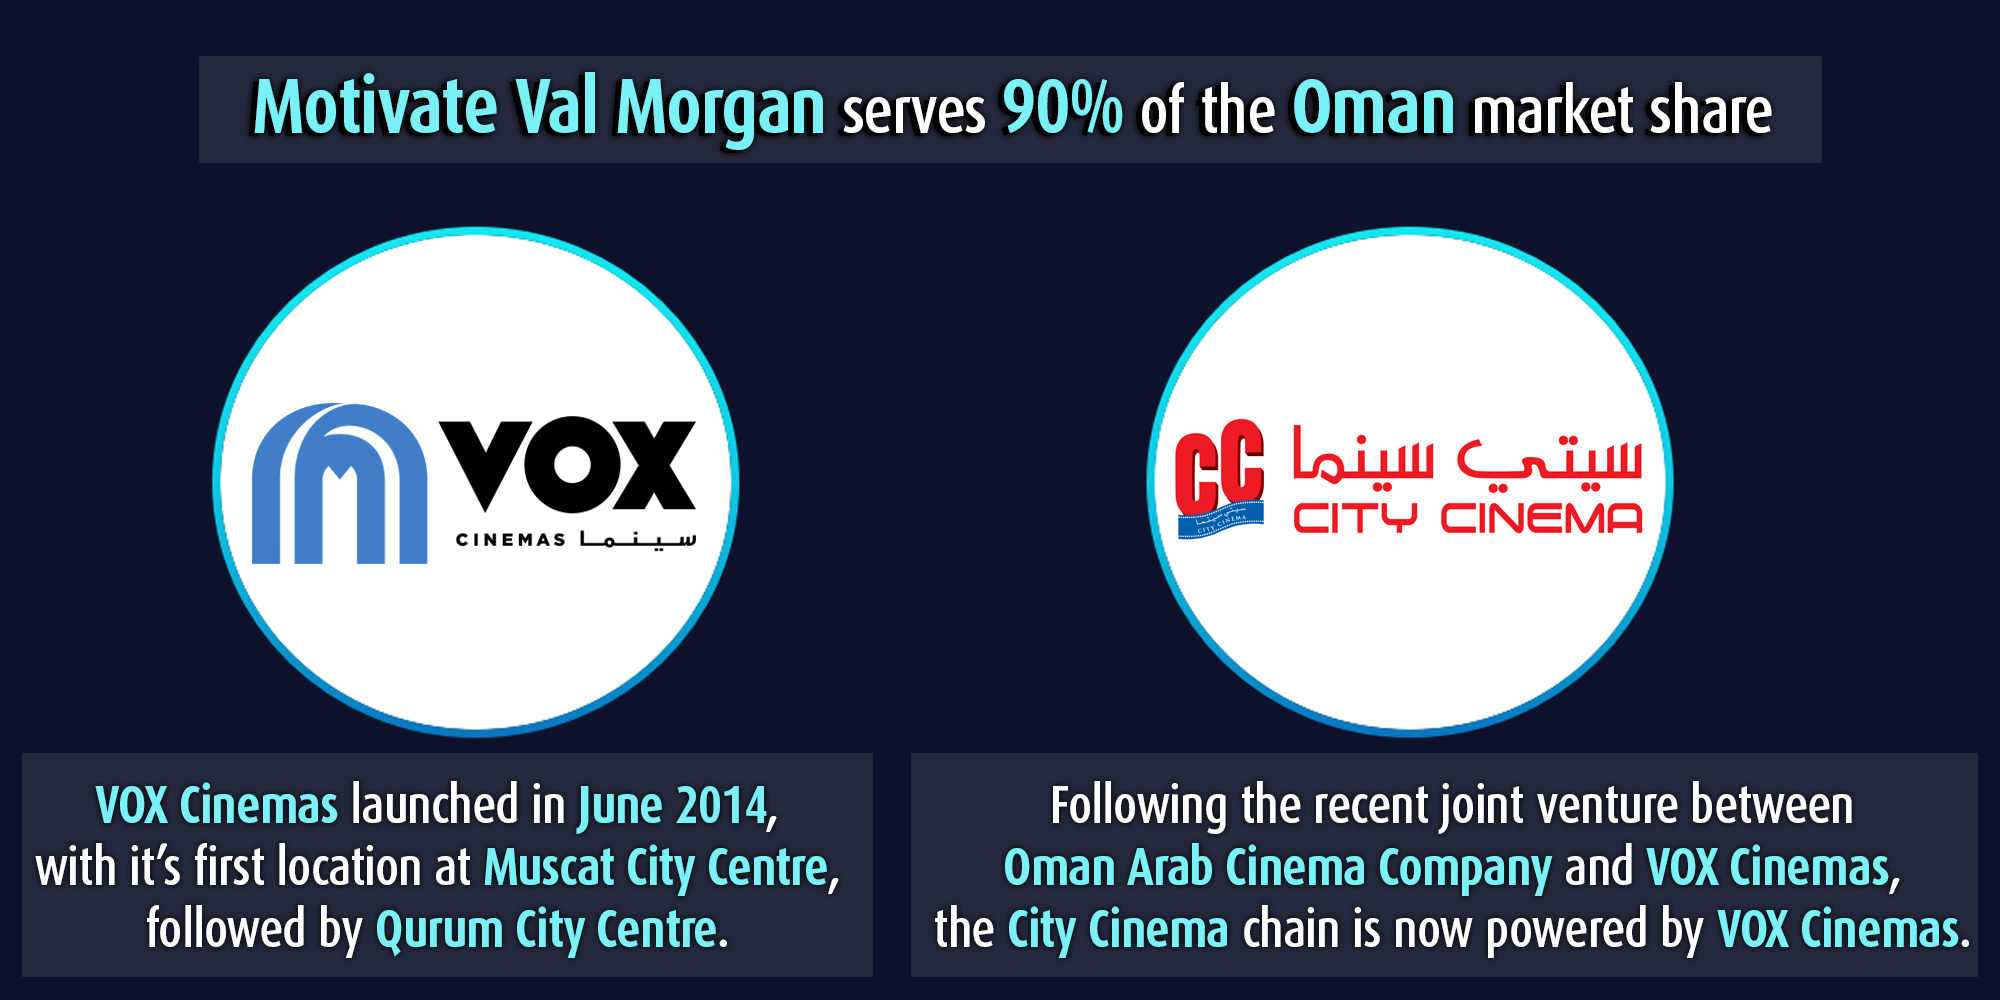 Cinema chains in Oman represented by Motivate Val Morgan